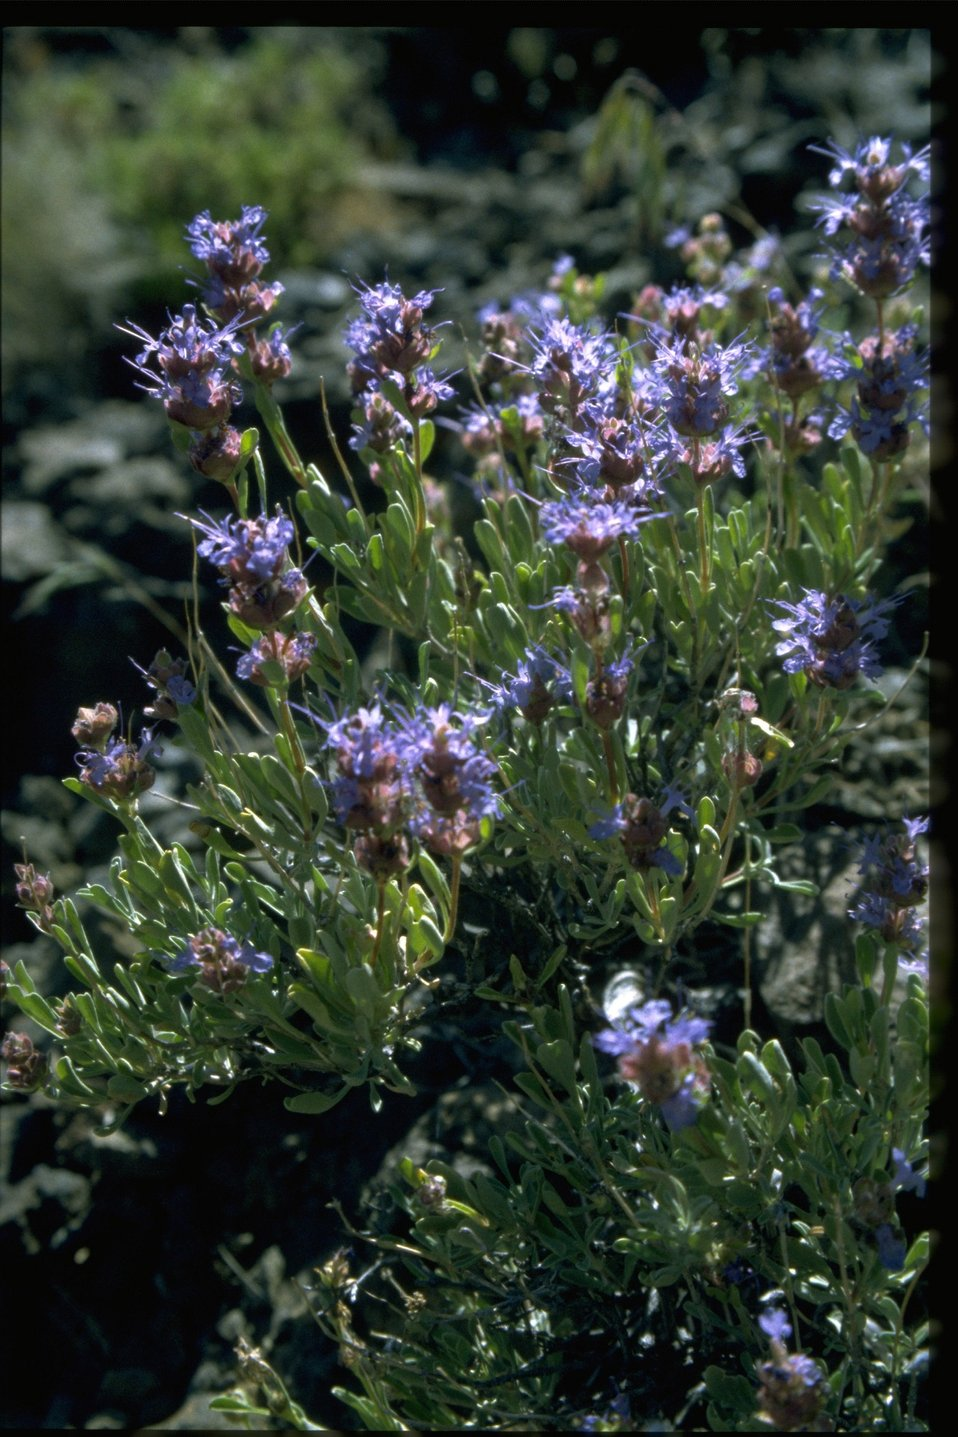 Medium shot of purple sage (Saliva dorrii).